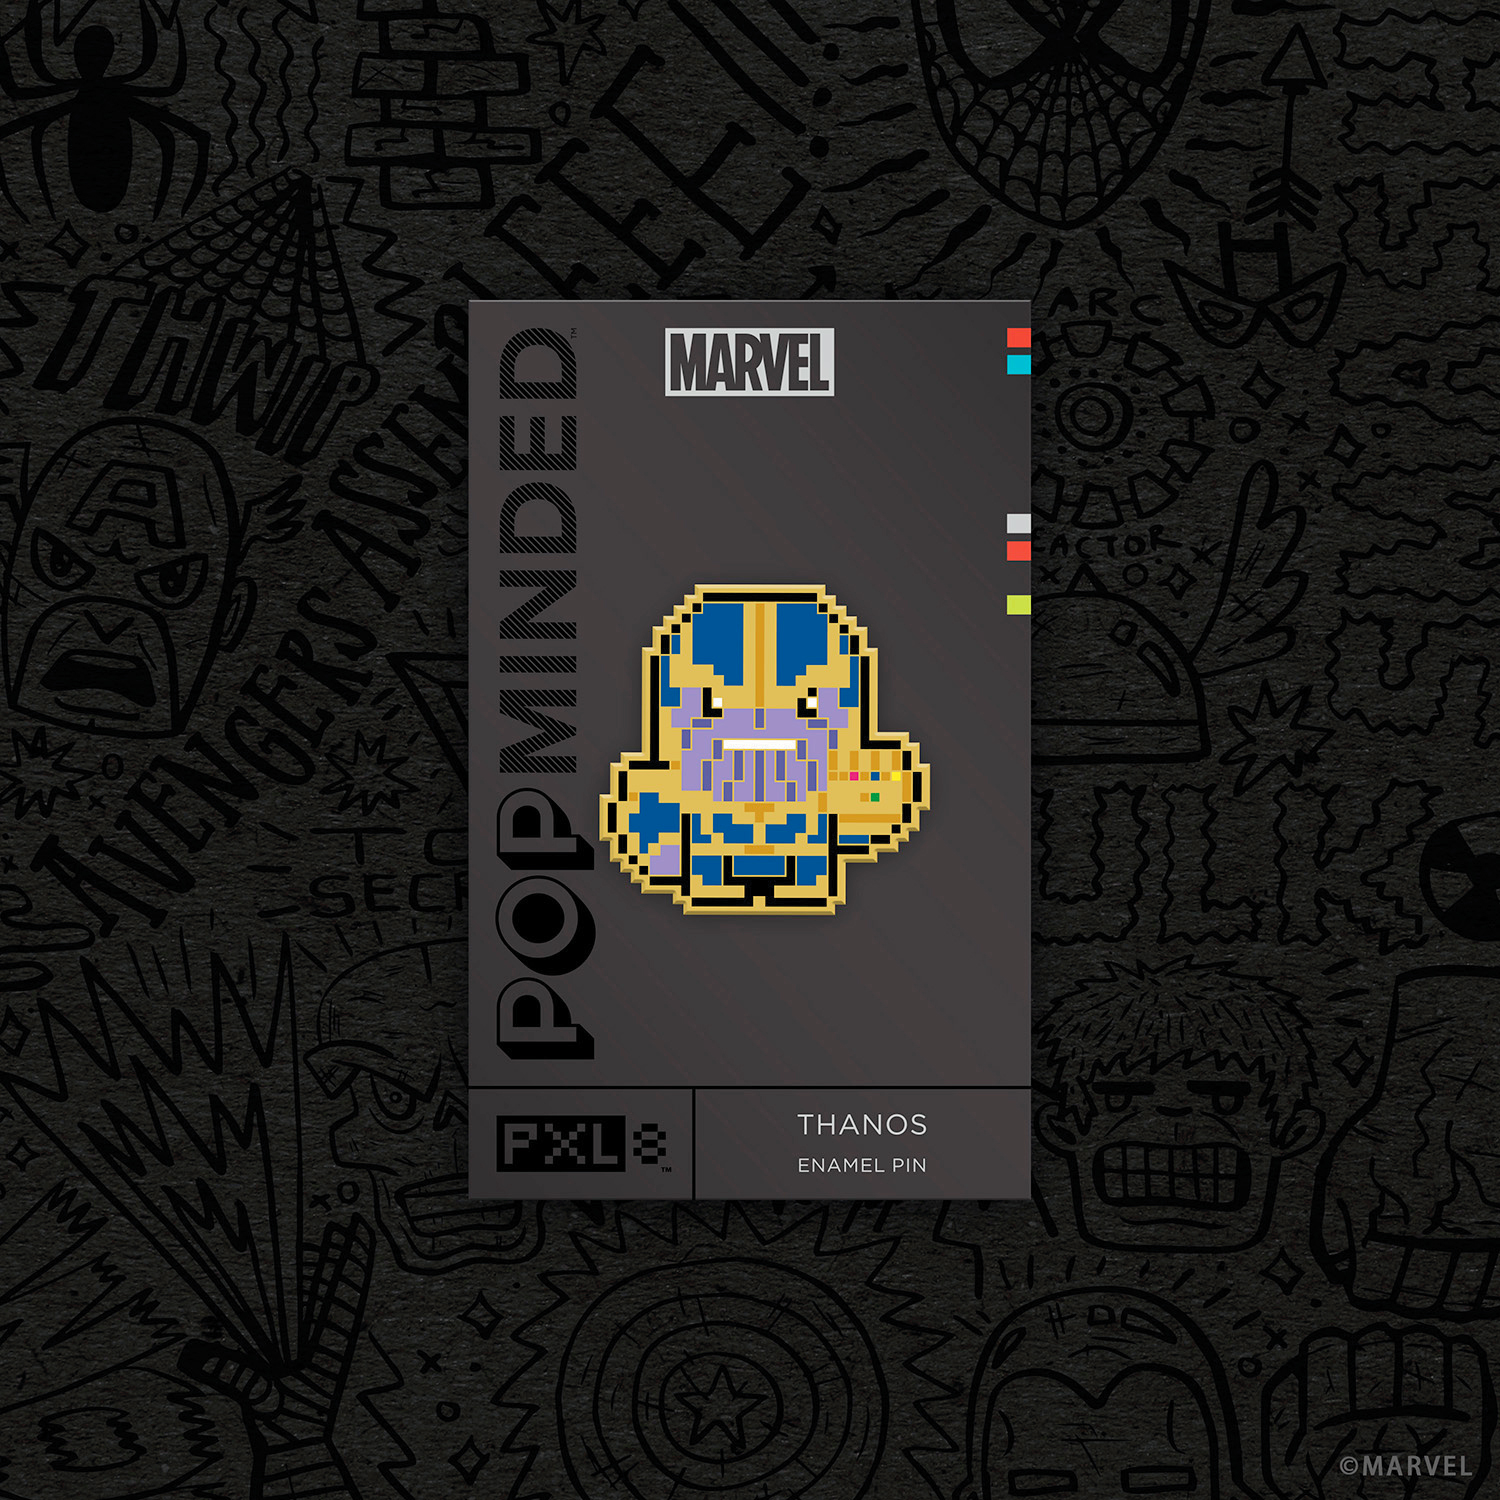 PM-MARVEL_2_excl_BG